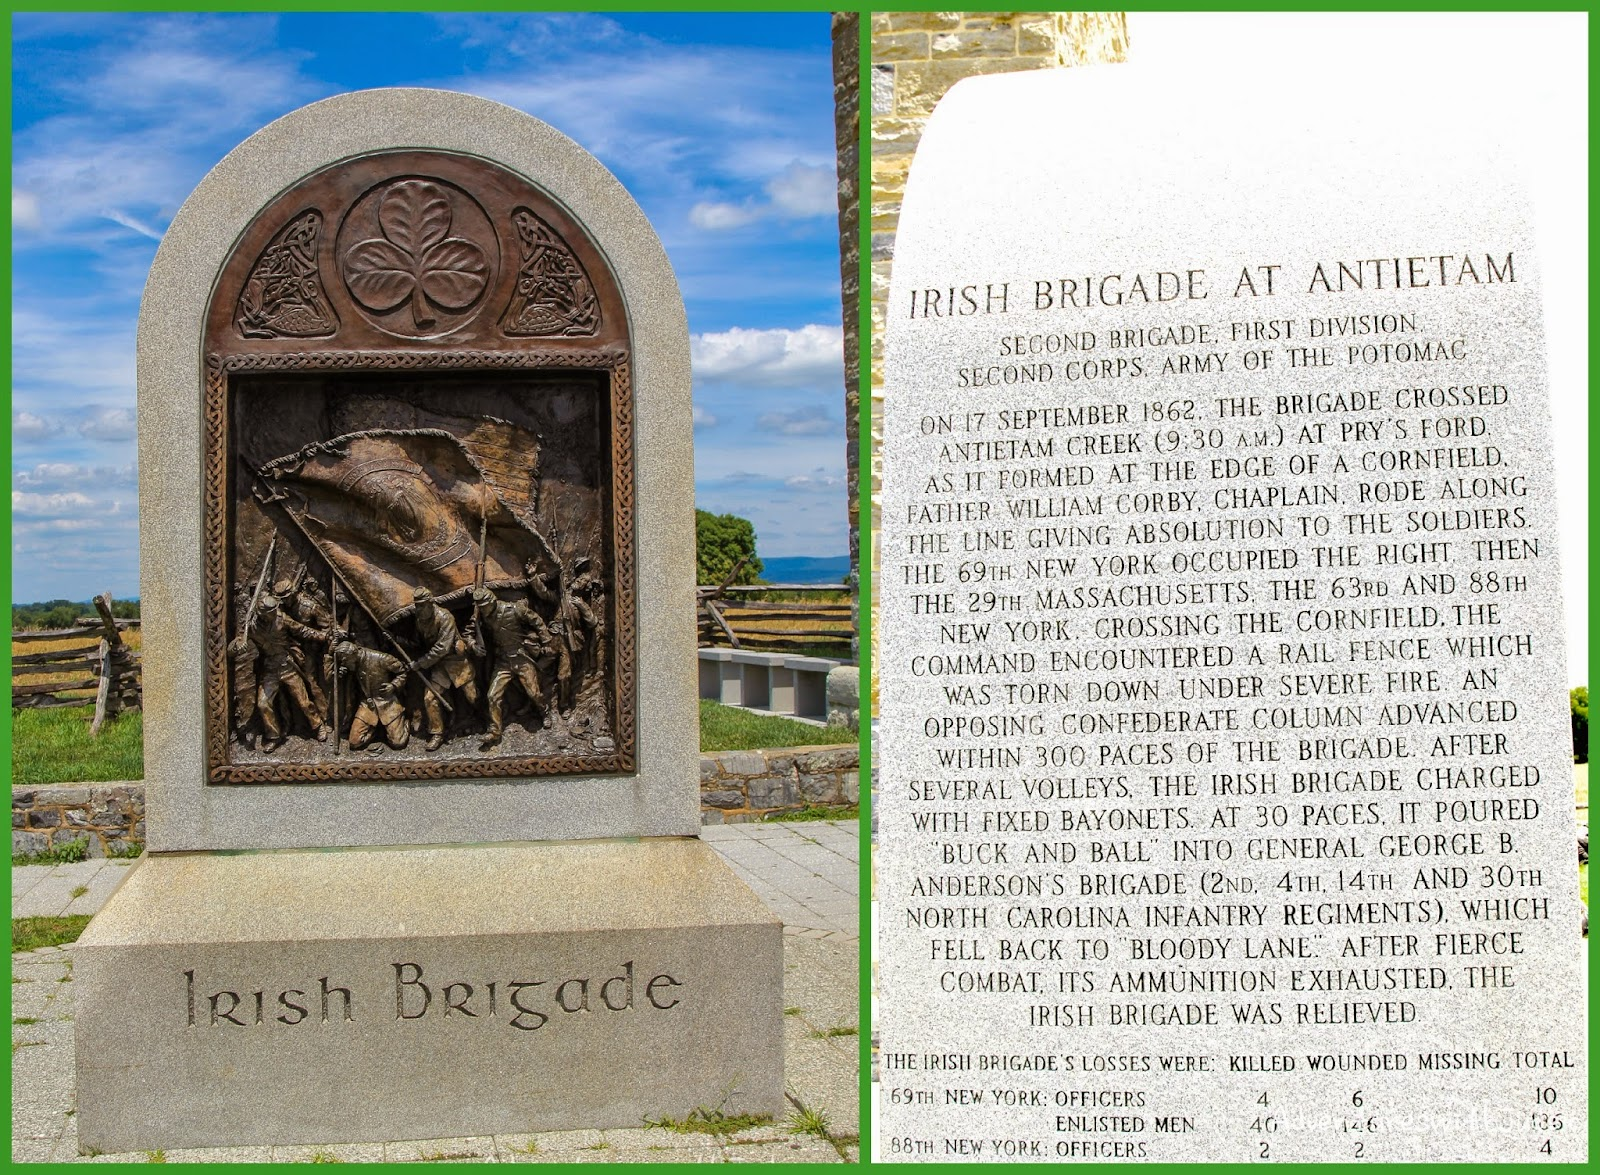 Irish Brigade Memorial at Antietam National Battlefield